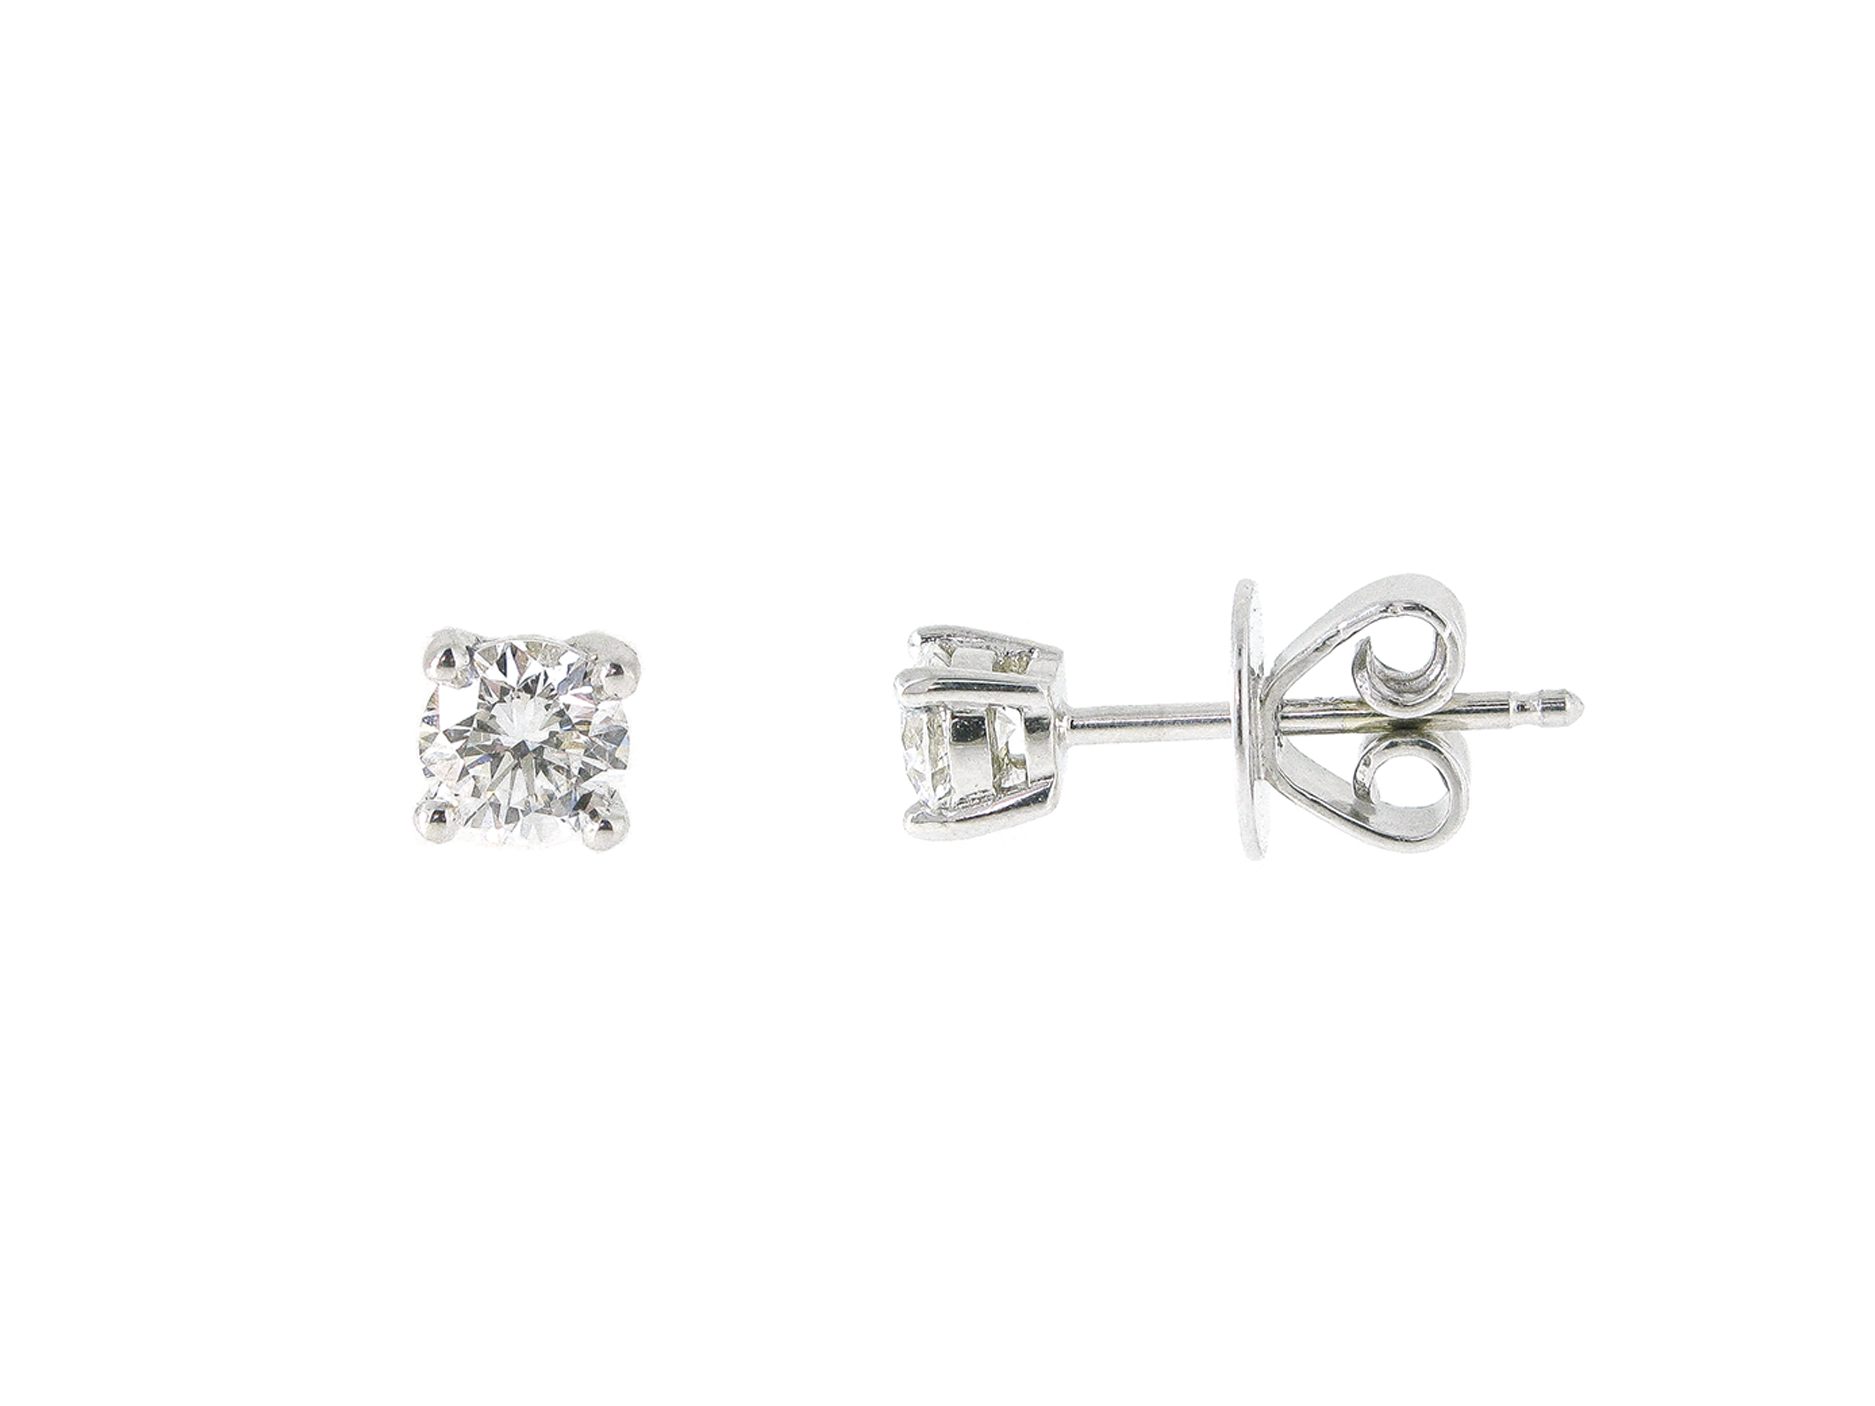 Four Claw Diamond Stud Earrings | B21062